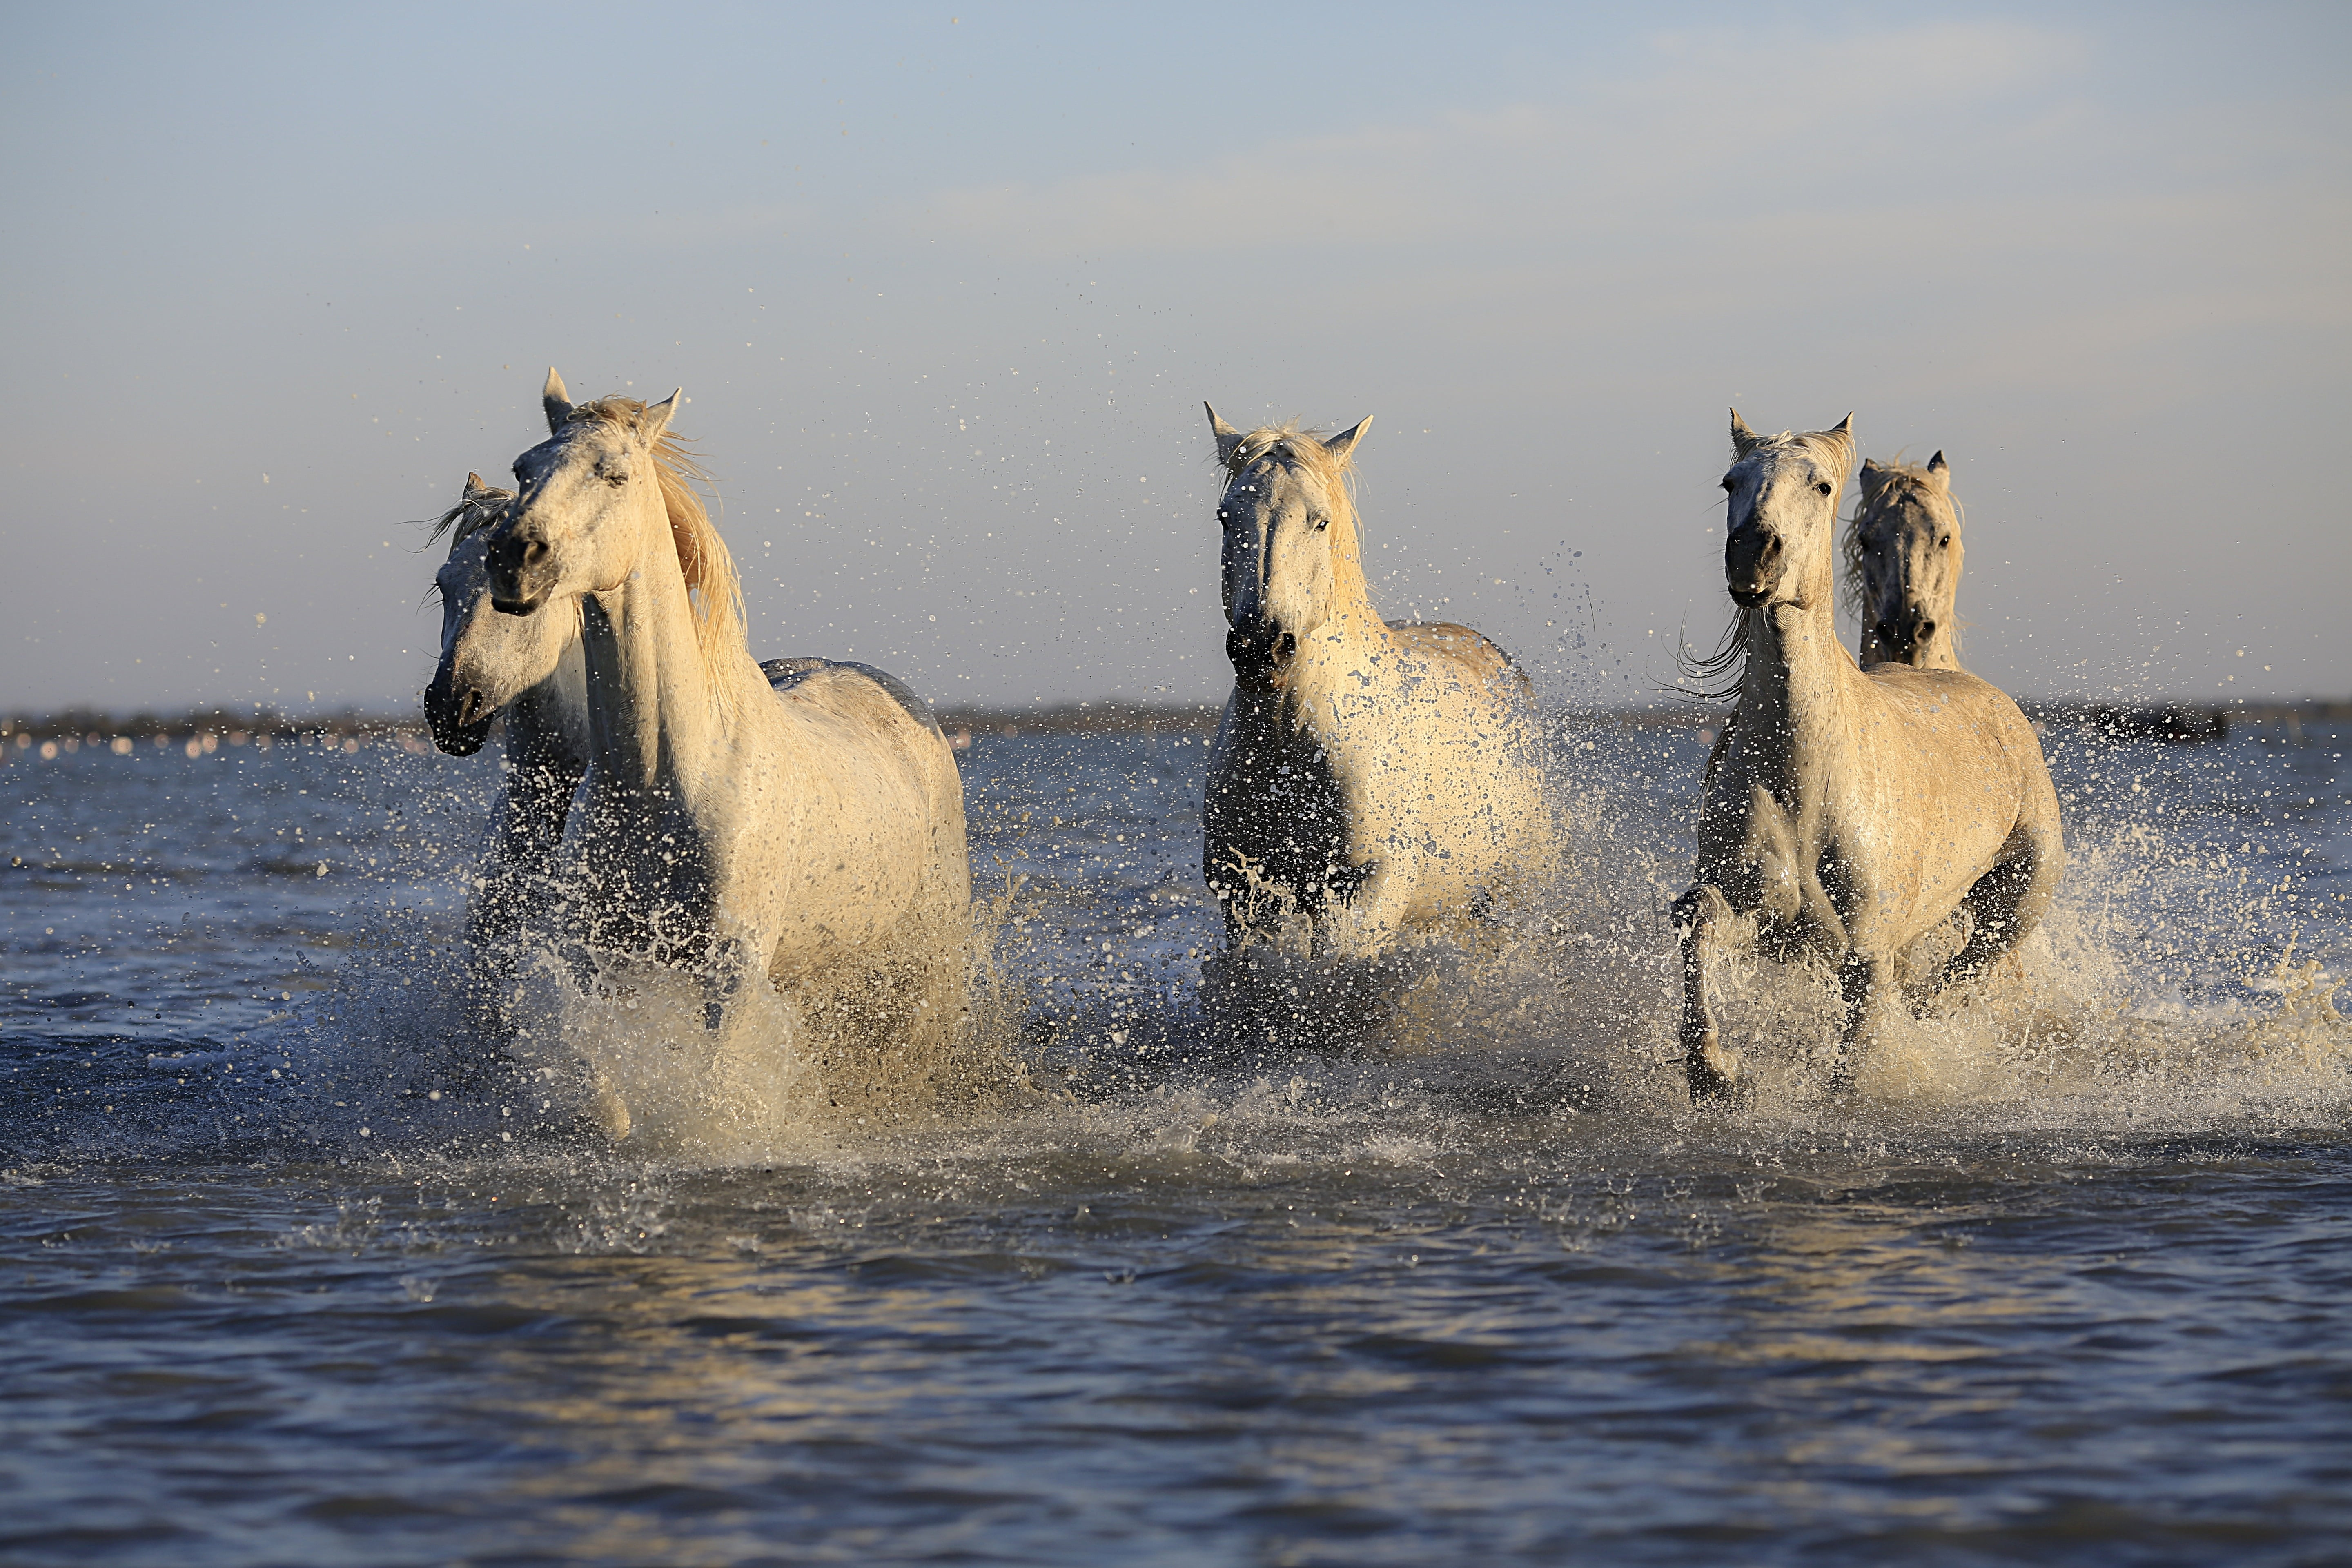 Group of white horse running on top of body of water HD wallpaper 5760x3840